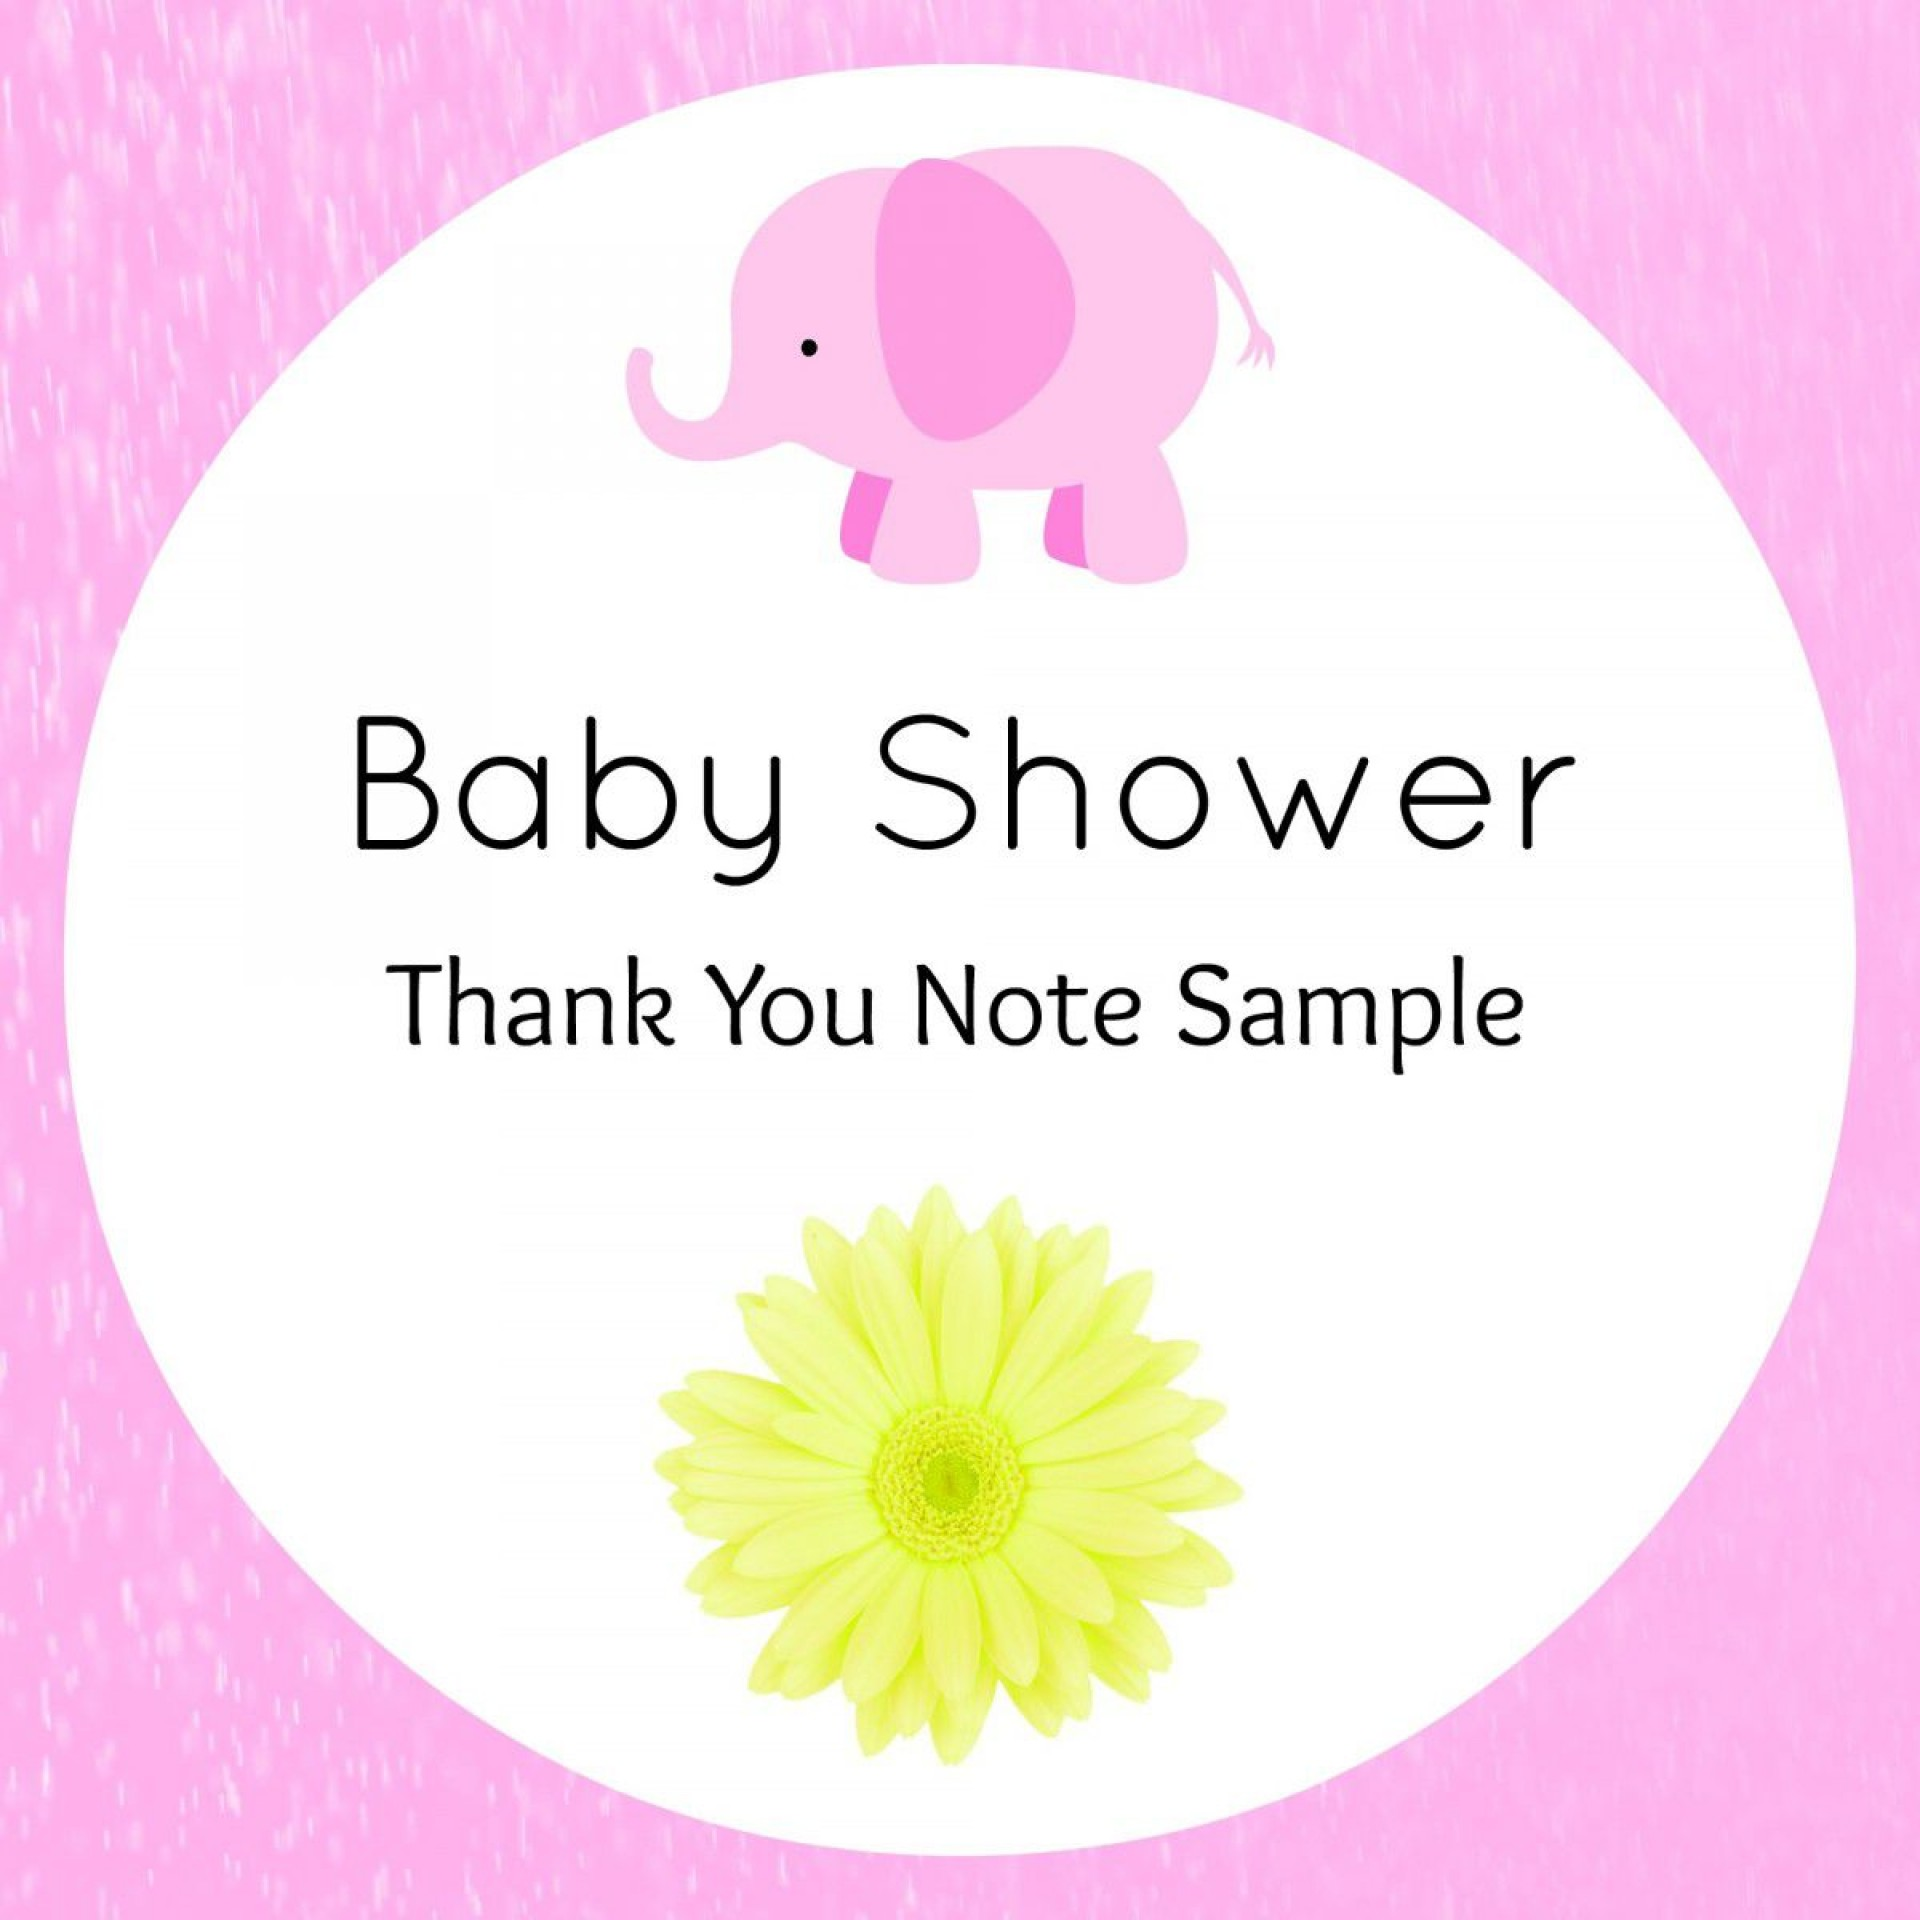 005 Awesome Thank You Note Template Baby Shower Sample  Card Free For Letter Gift1920